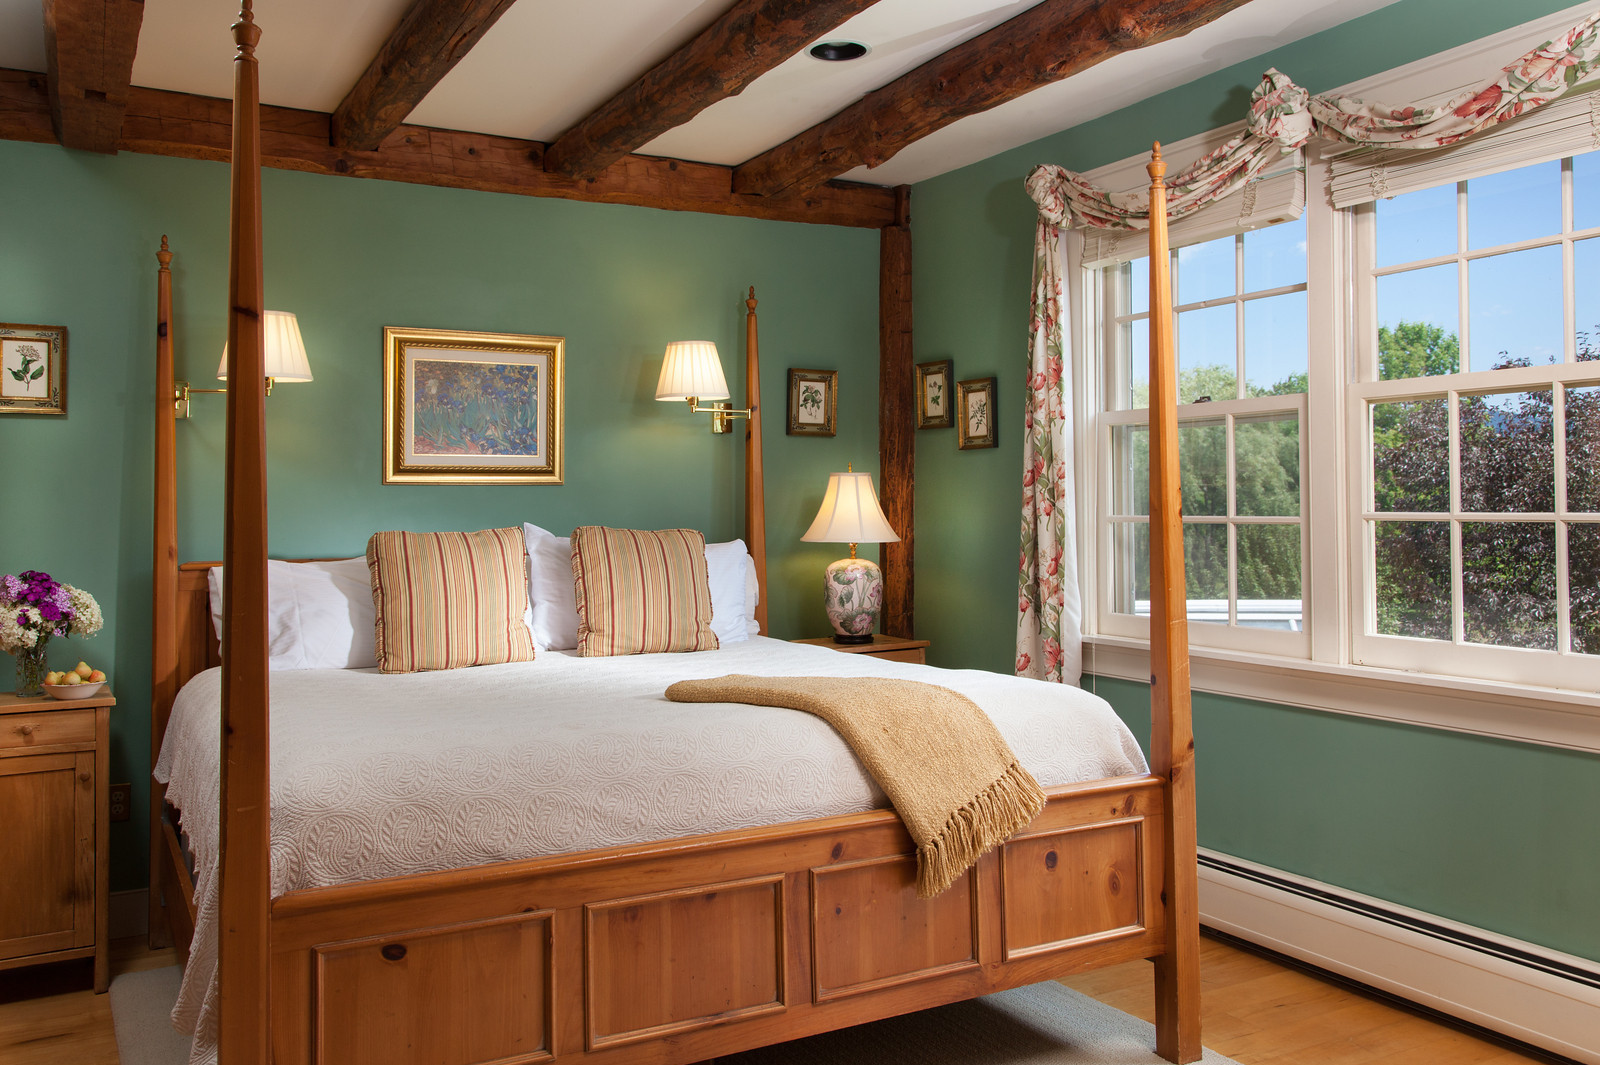 The Old Farmhouse Bed And Breakfast Not Your Grandma 39s B Andb Traditional Inns Transform For